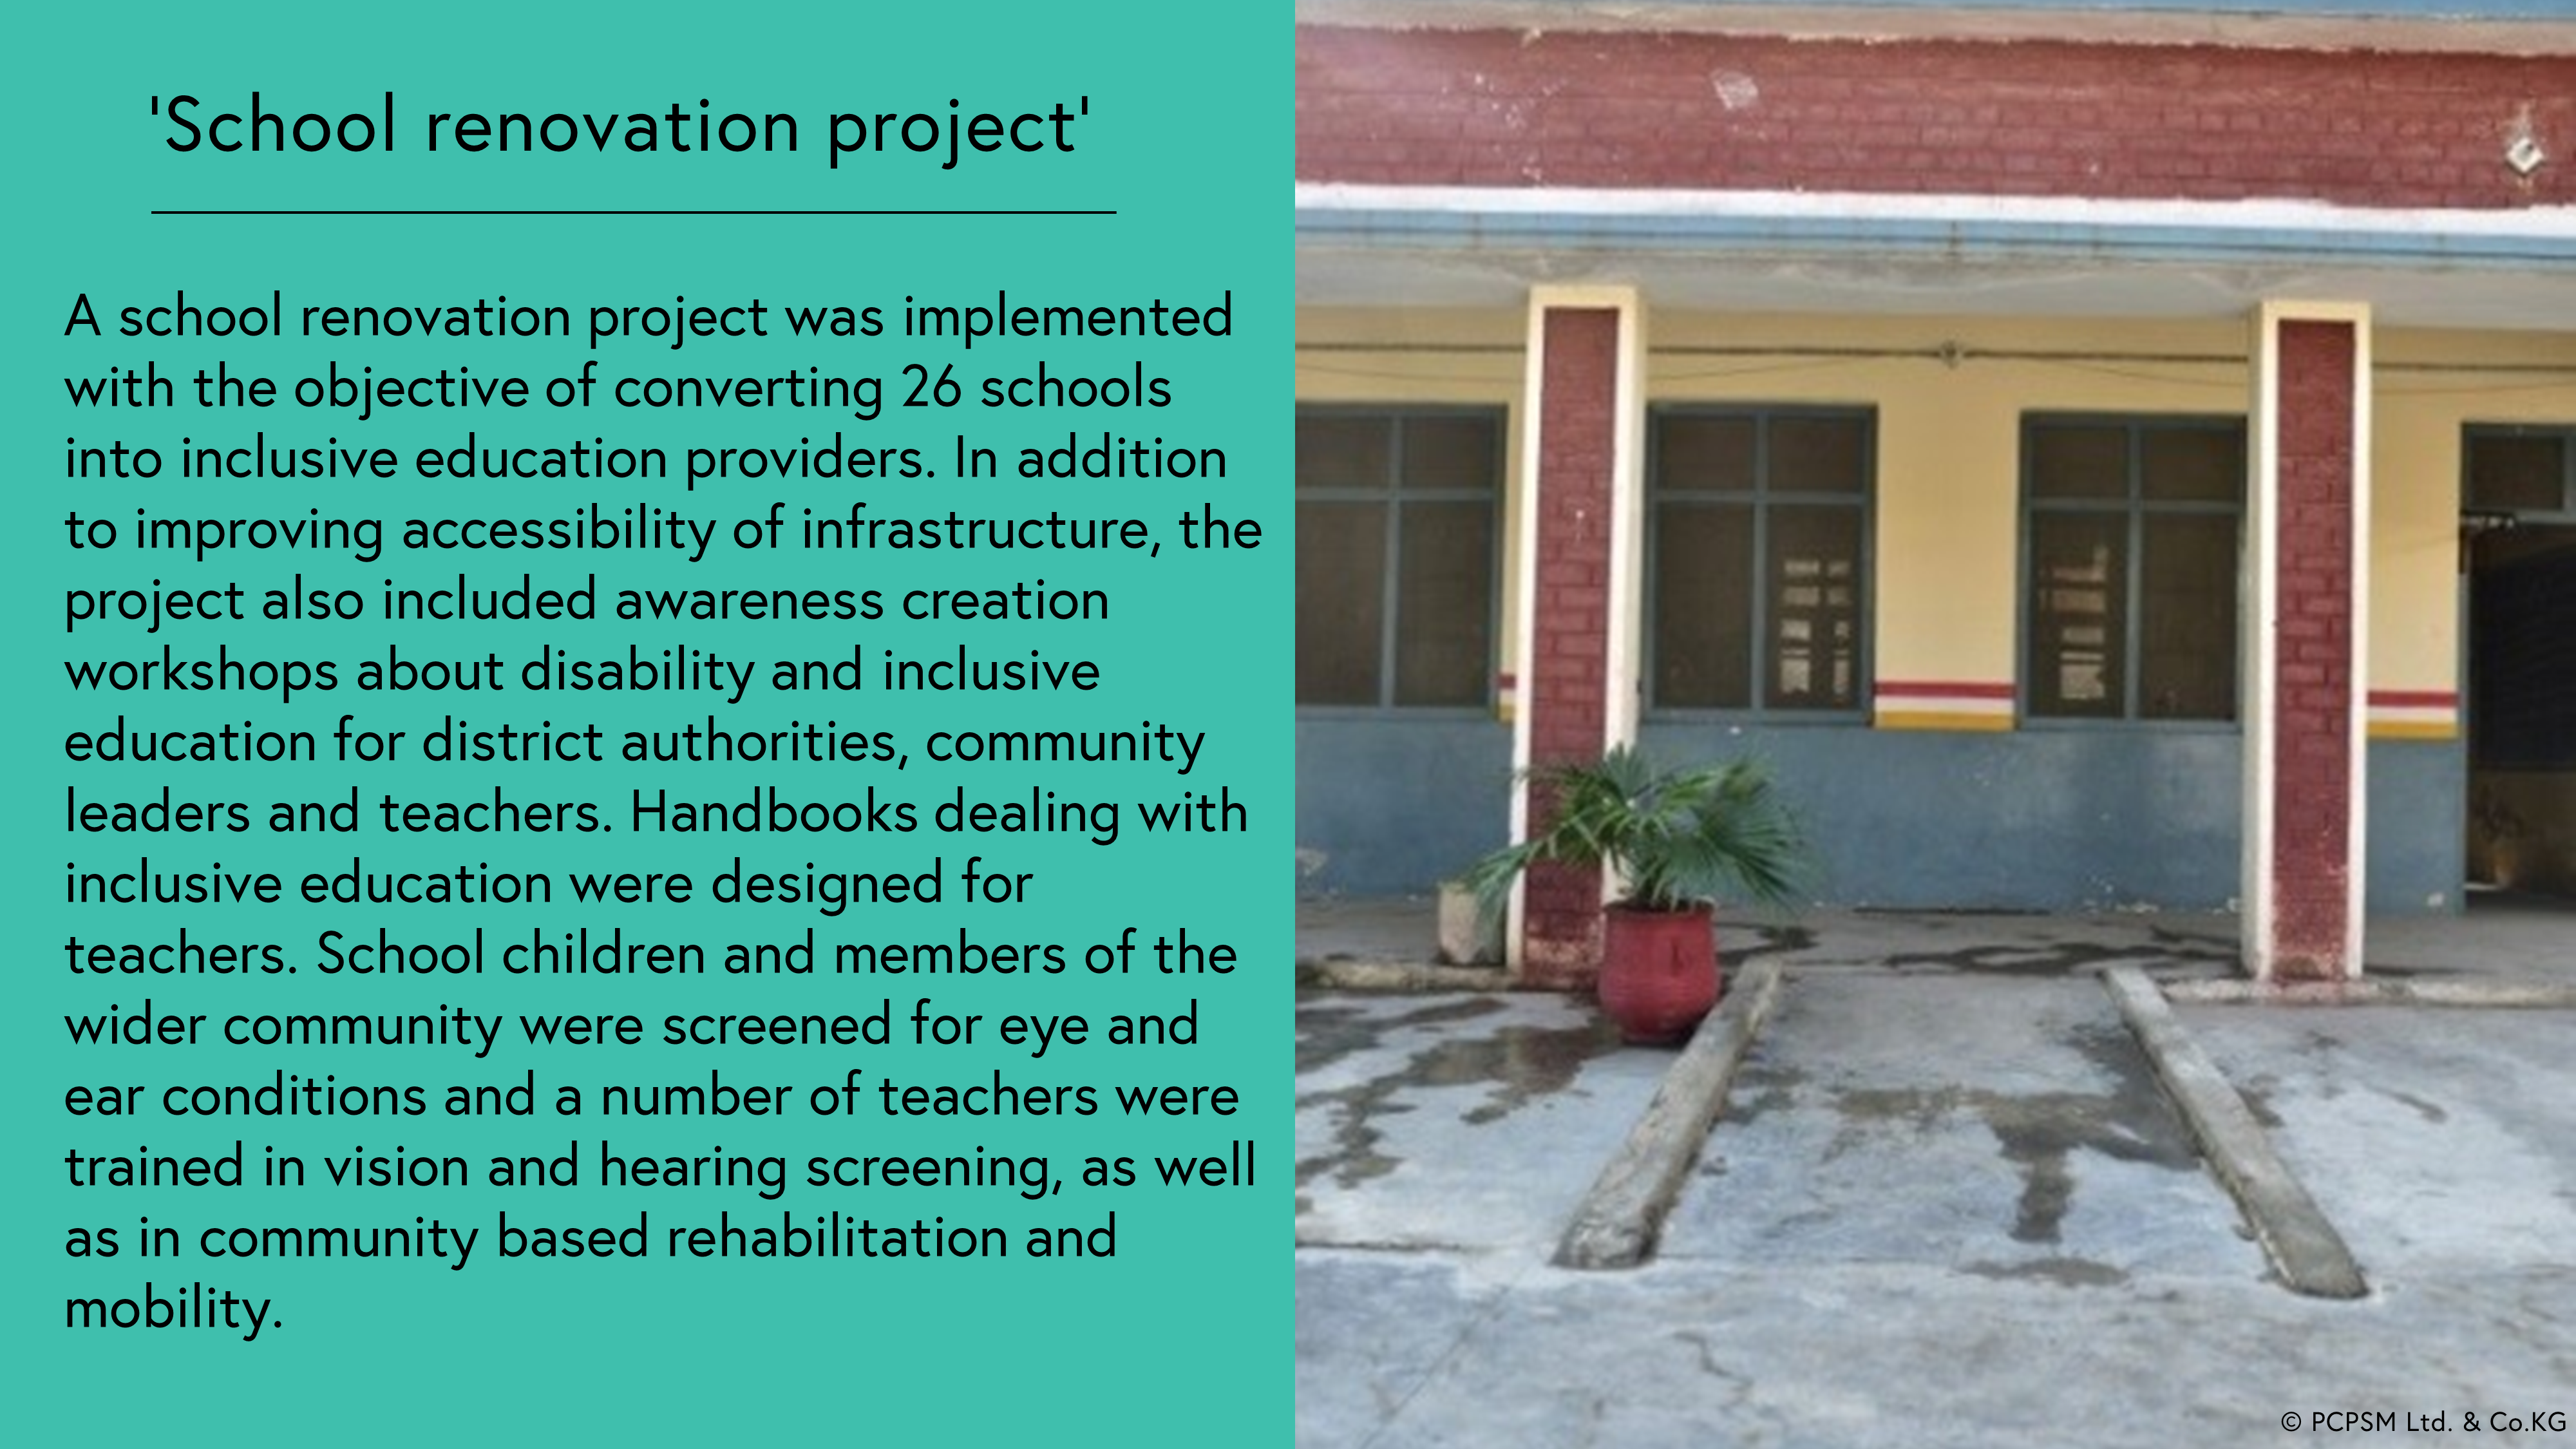 School renovation project: A school renovation project was implemented with the objective of converting 26 schools into inclusive education providers. In addition to improving accessibility of infrastructure, the project also included awareness creation workshops about disability and inclusive education for district authorities, community leaders and teachers. Handbooks dealing with inclusive education were designed for teachers. School children and members of the wider community were screened for eye and ear conditions and a number of teachers were trained in vision and hearing screening, as well as in community based rehabilitation and mobility. Photo shows the front of a school with a ramp entrance.